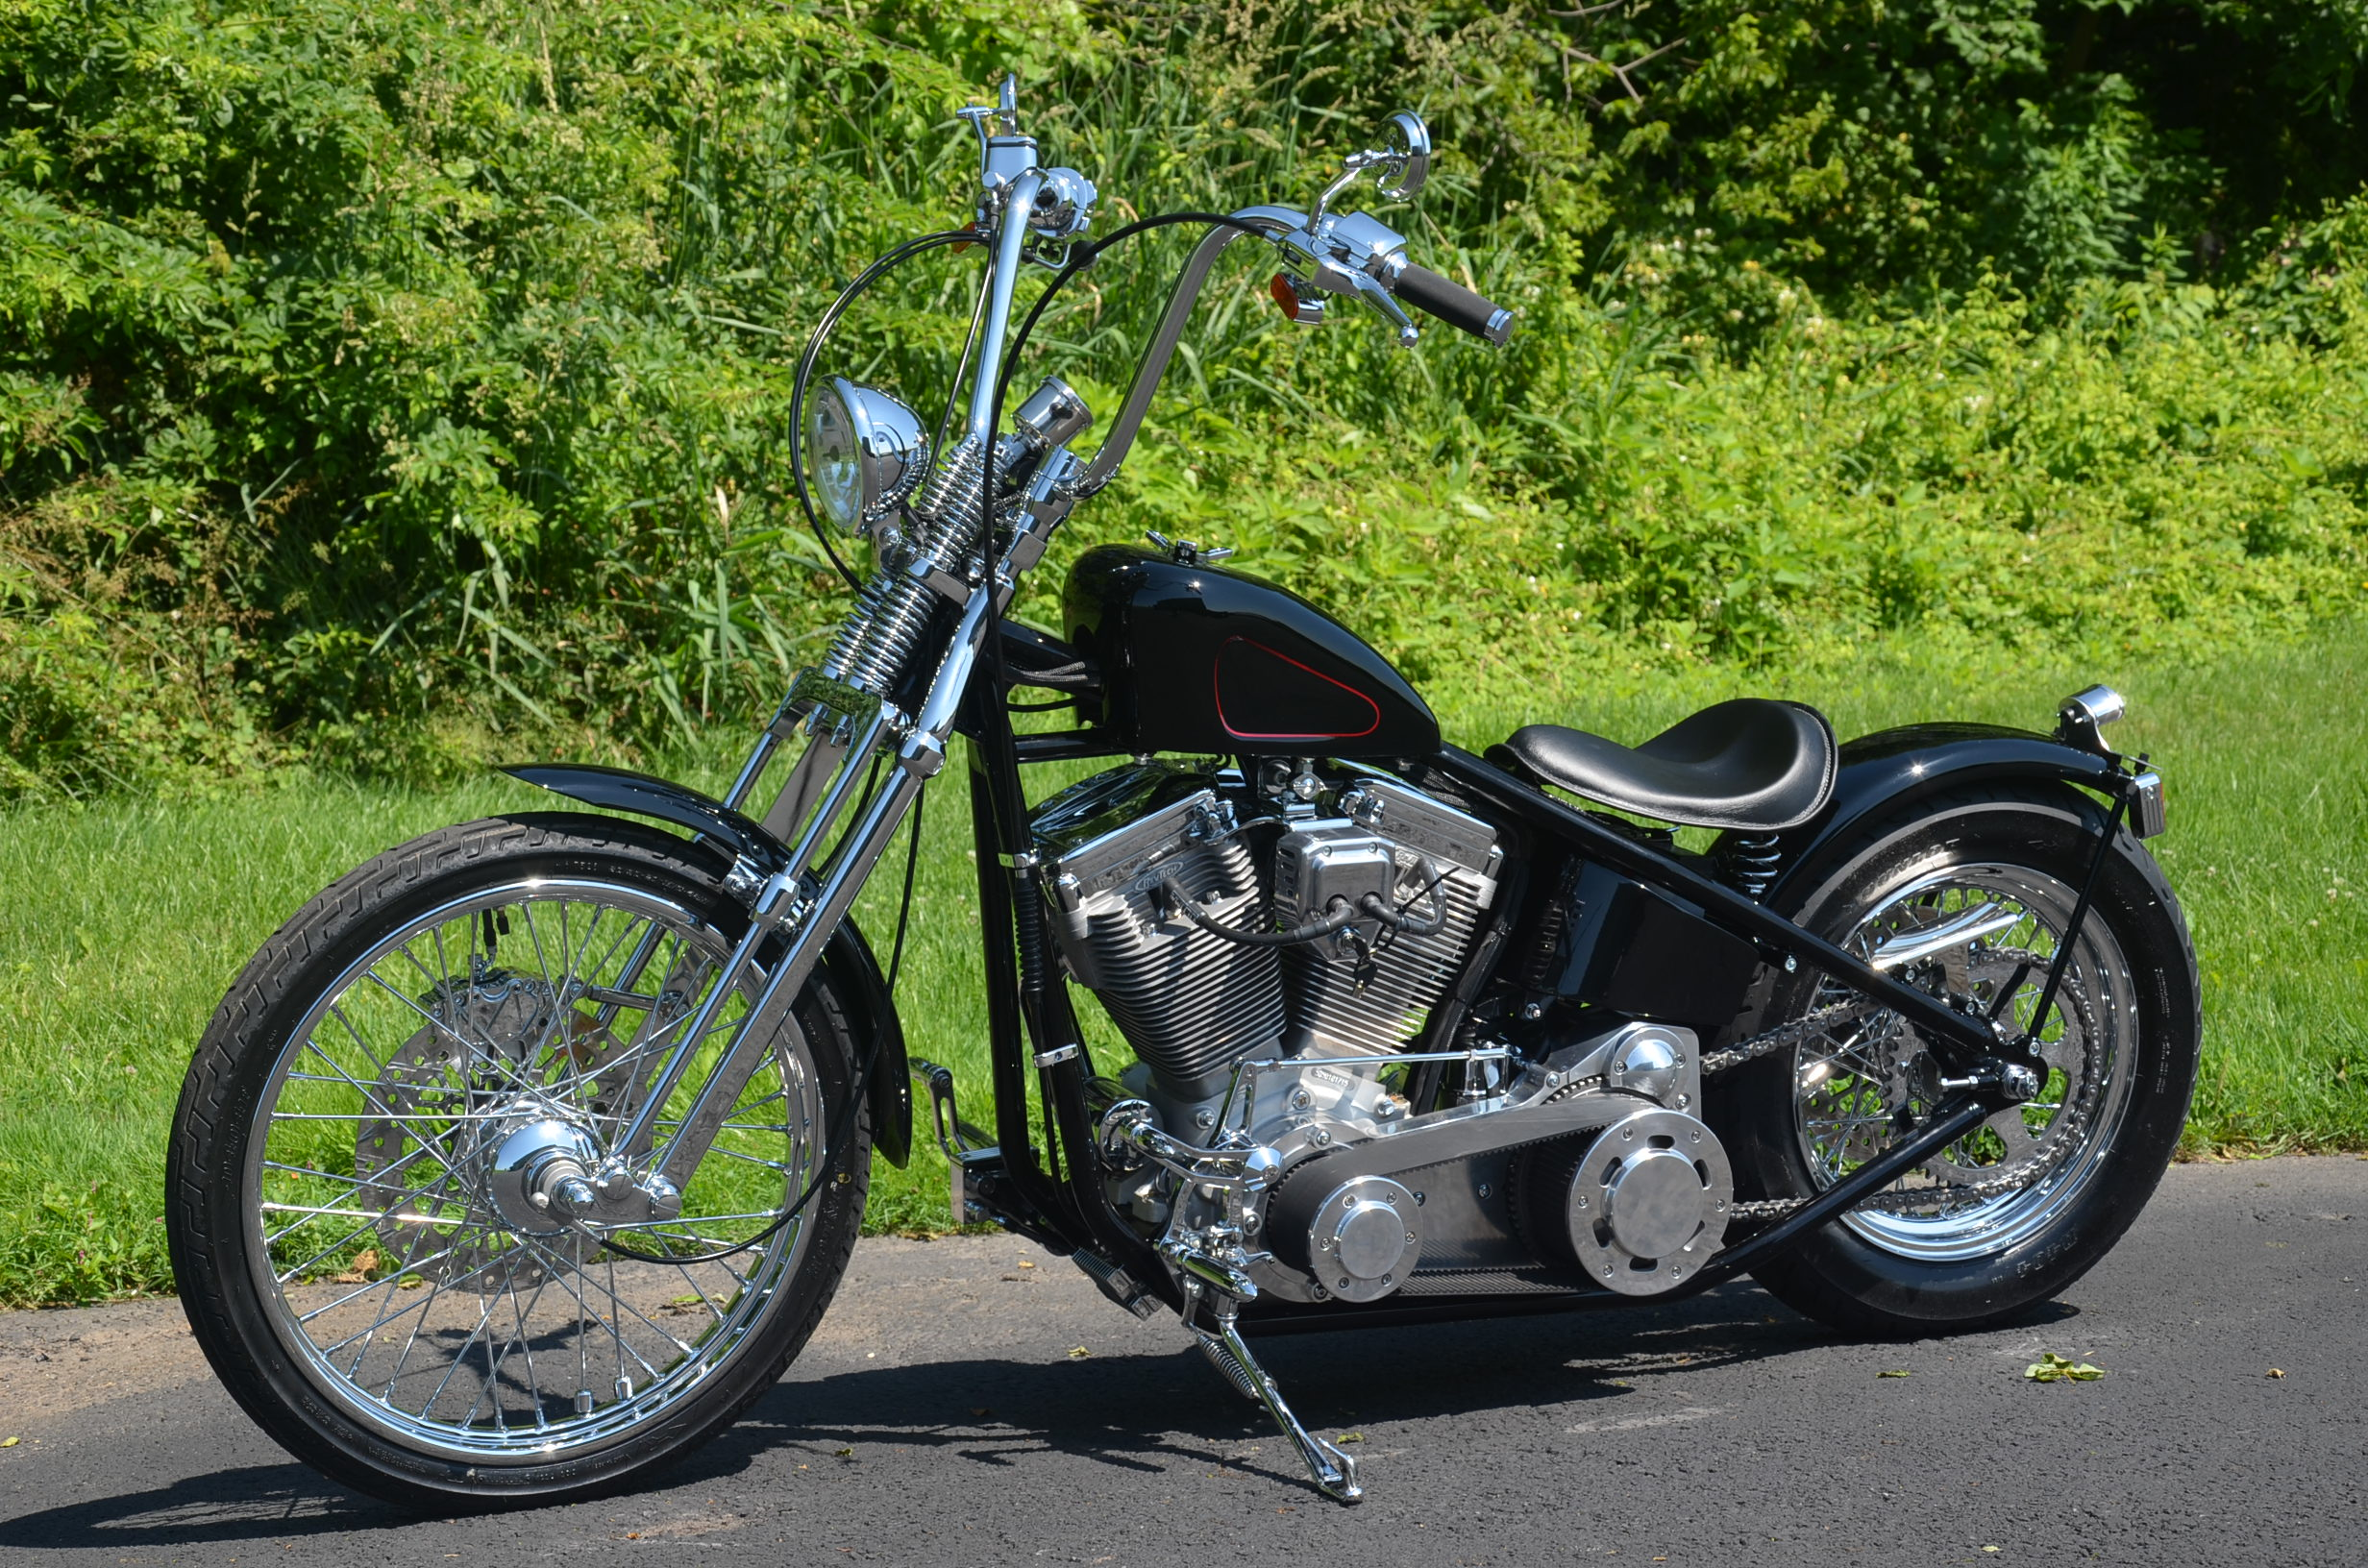 2016 american classic motors rigid bobber for sale on 2040